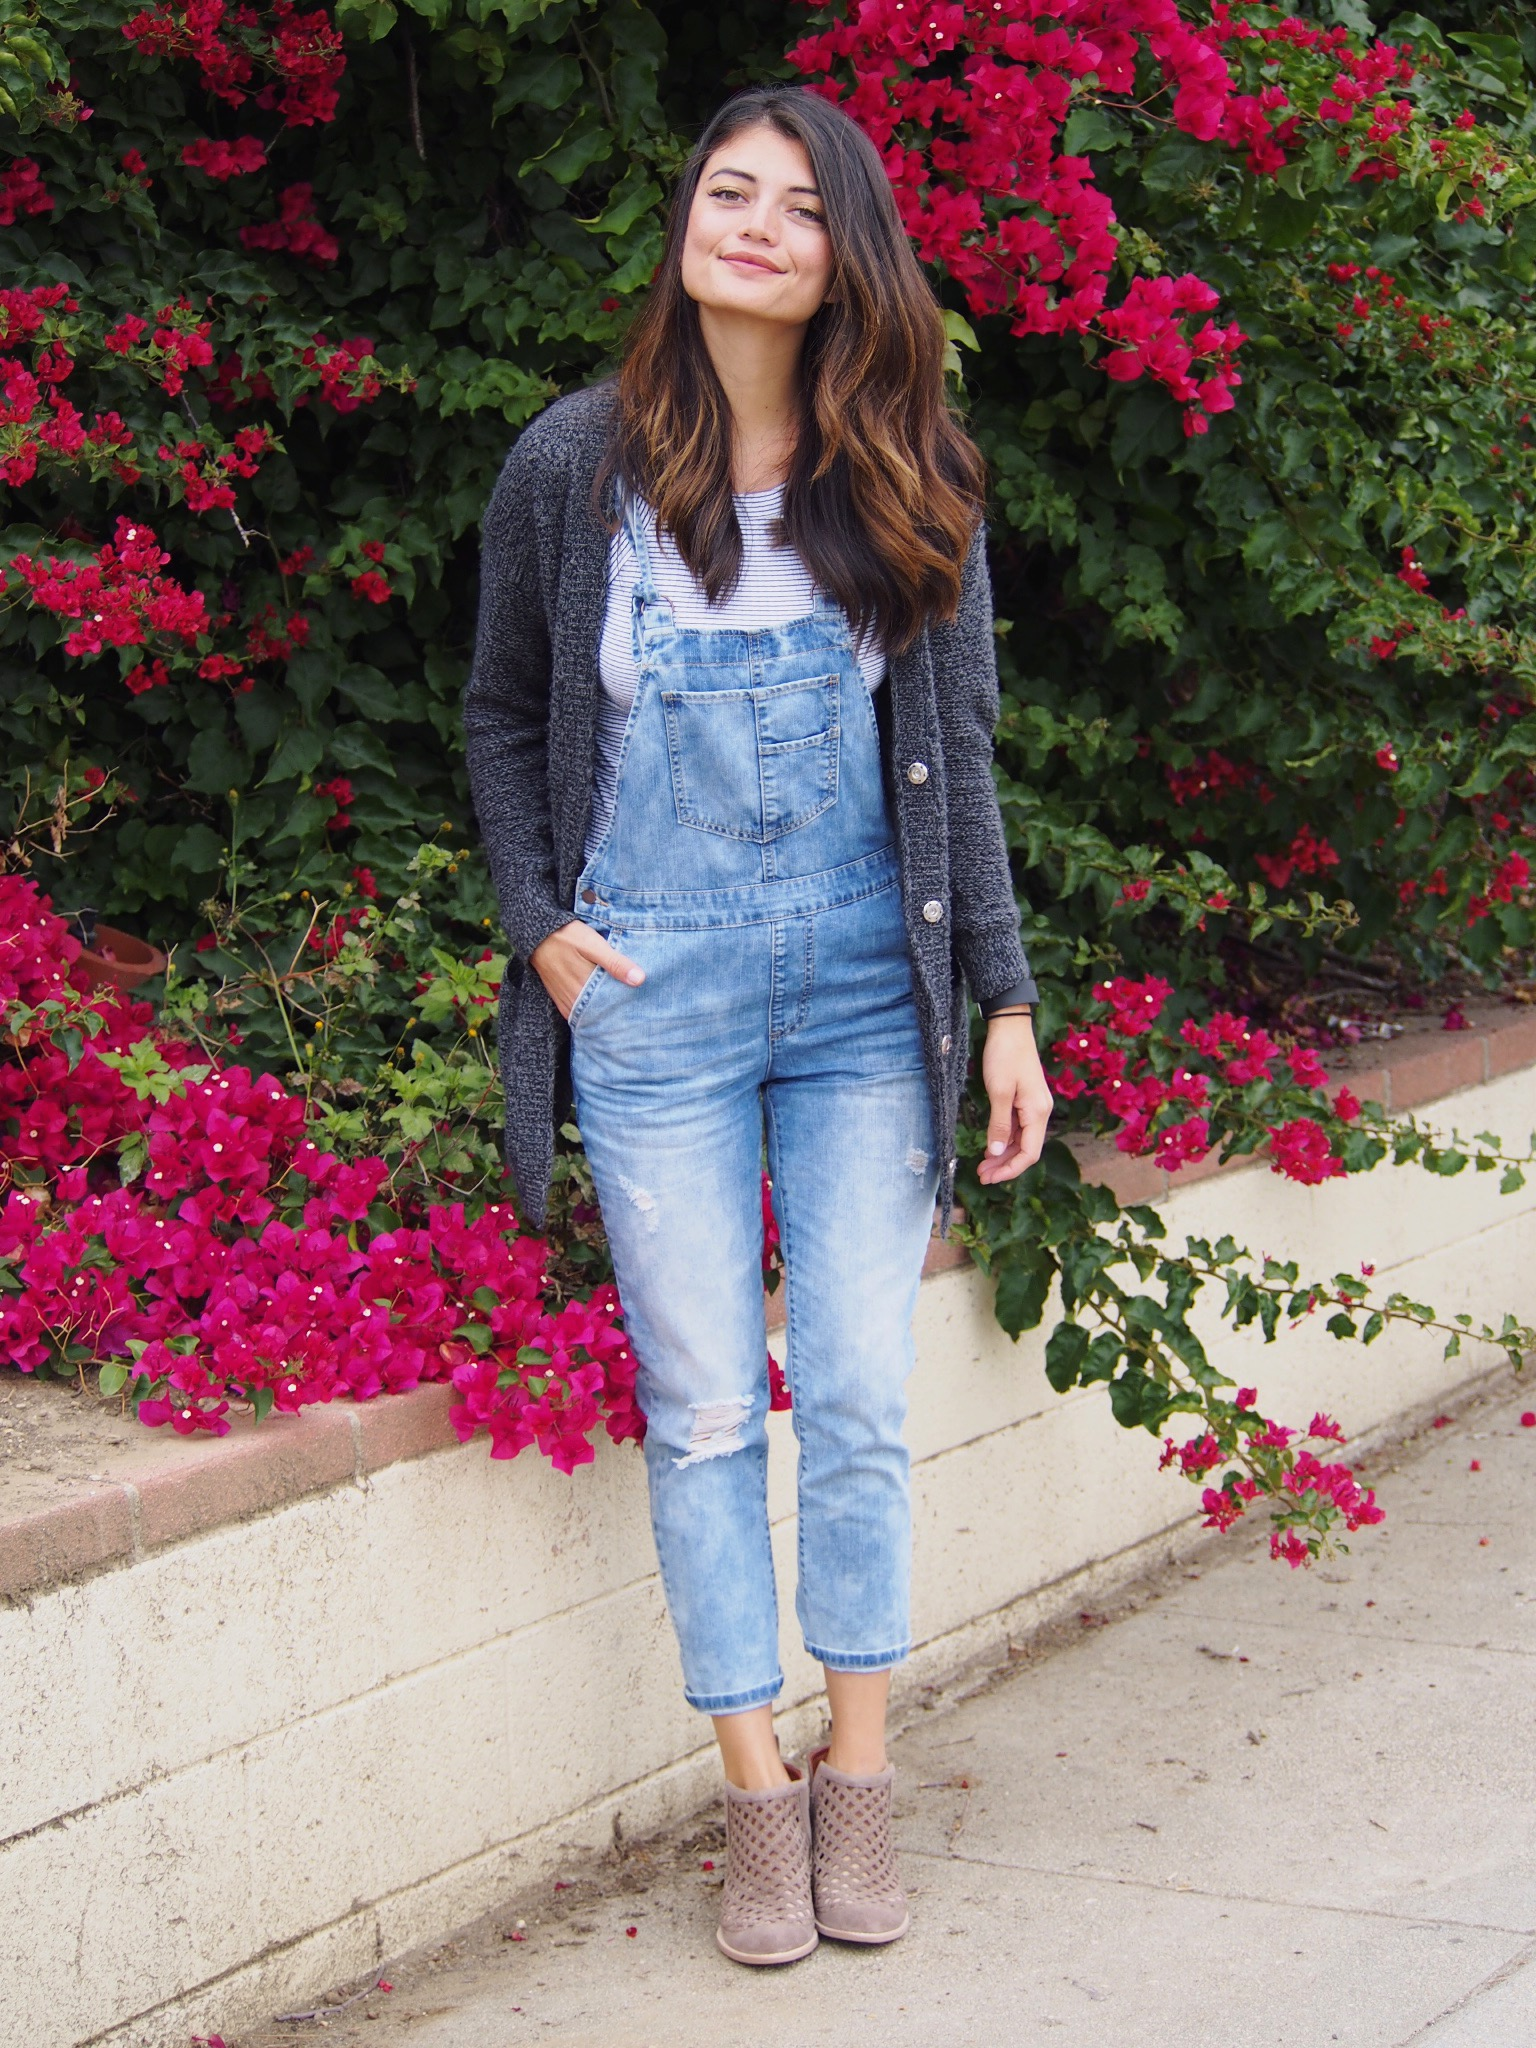 I will probably keep wearing overalls until I am an old lady :)